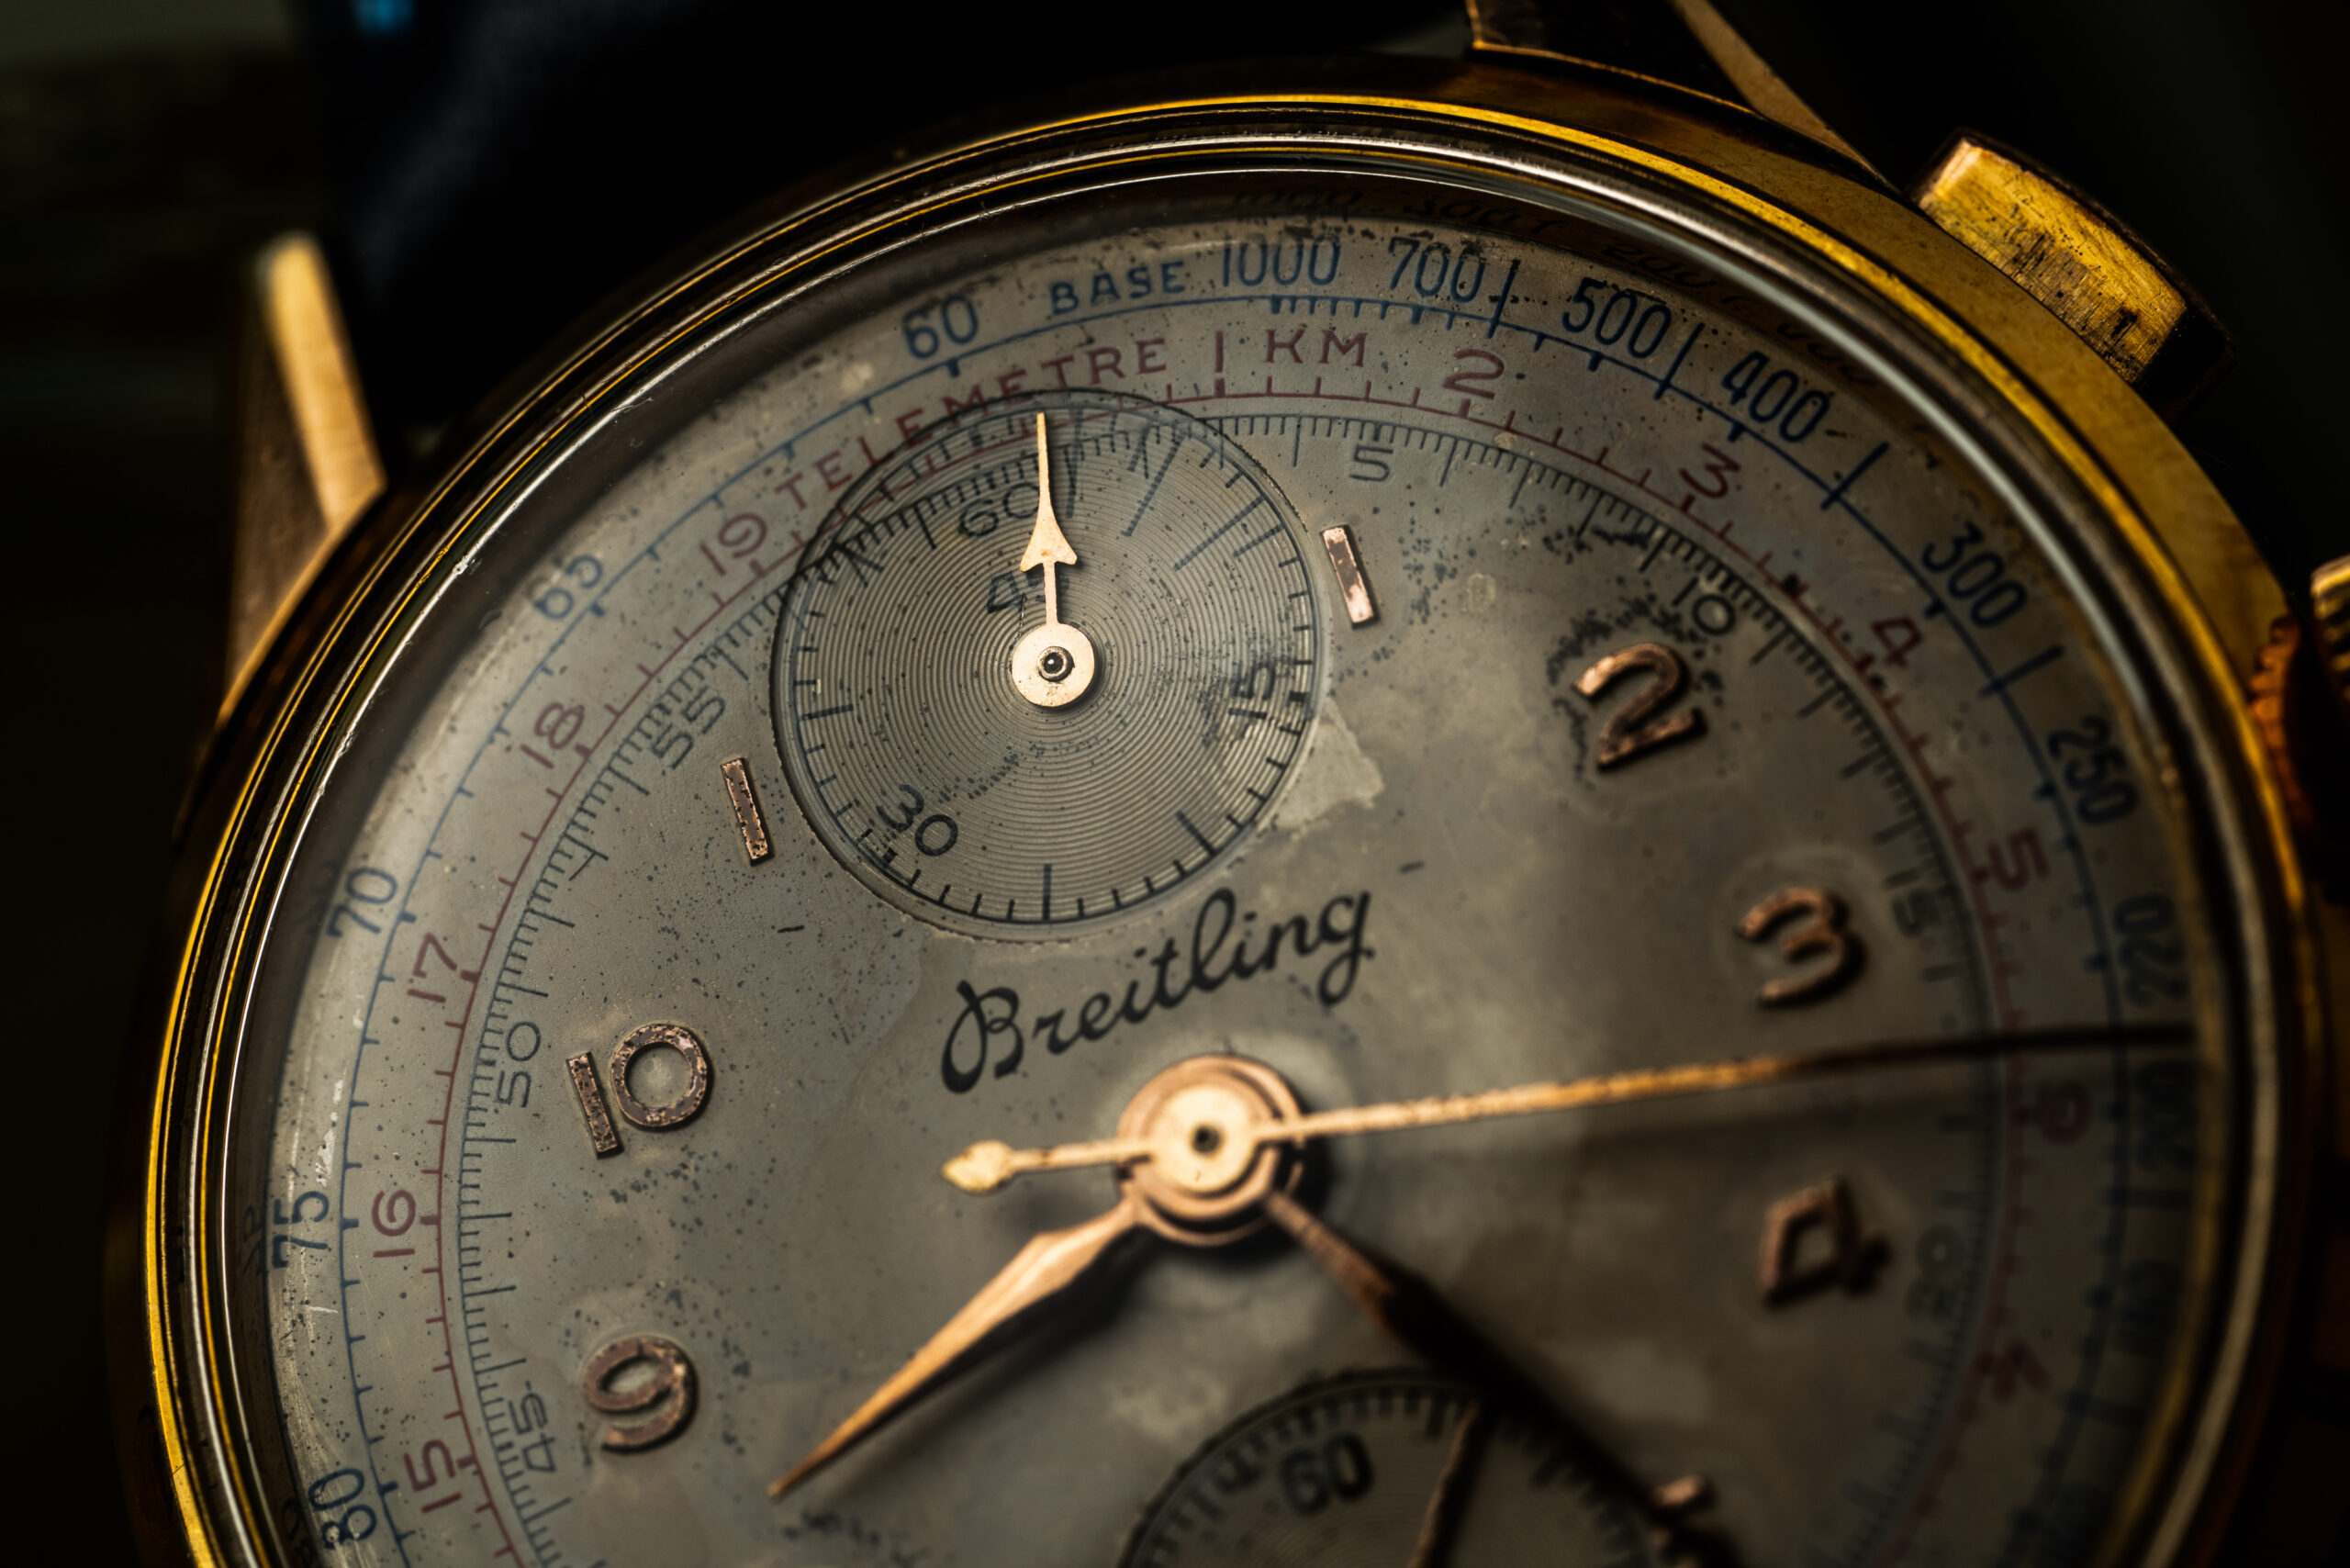 vintage breitling chronograph gold plated macro